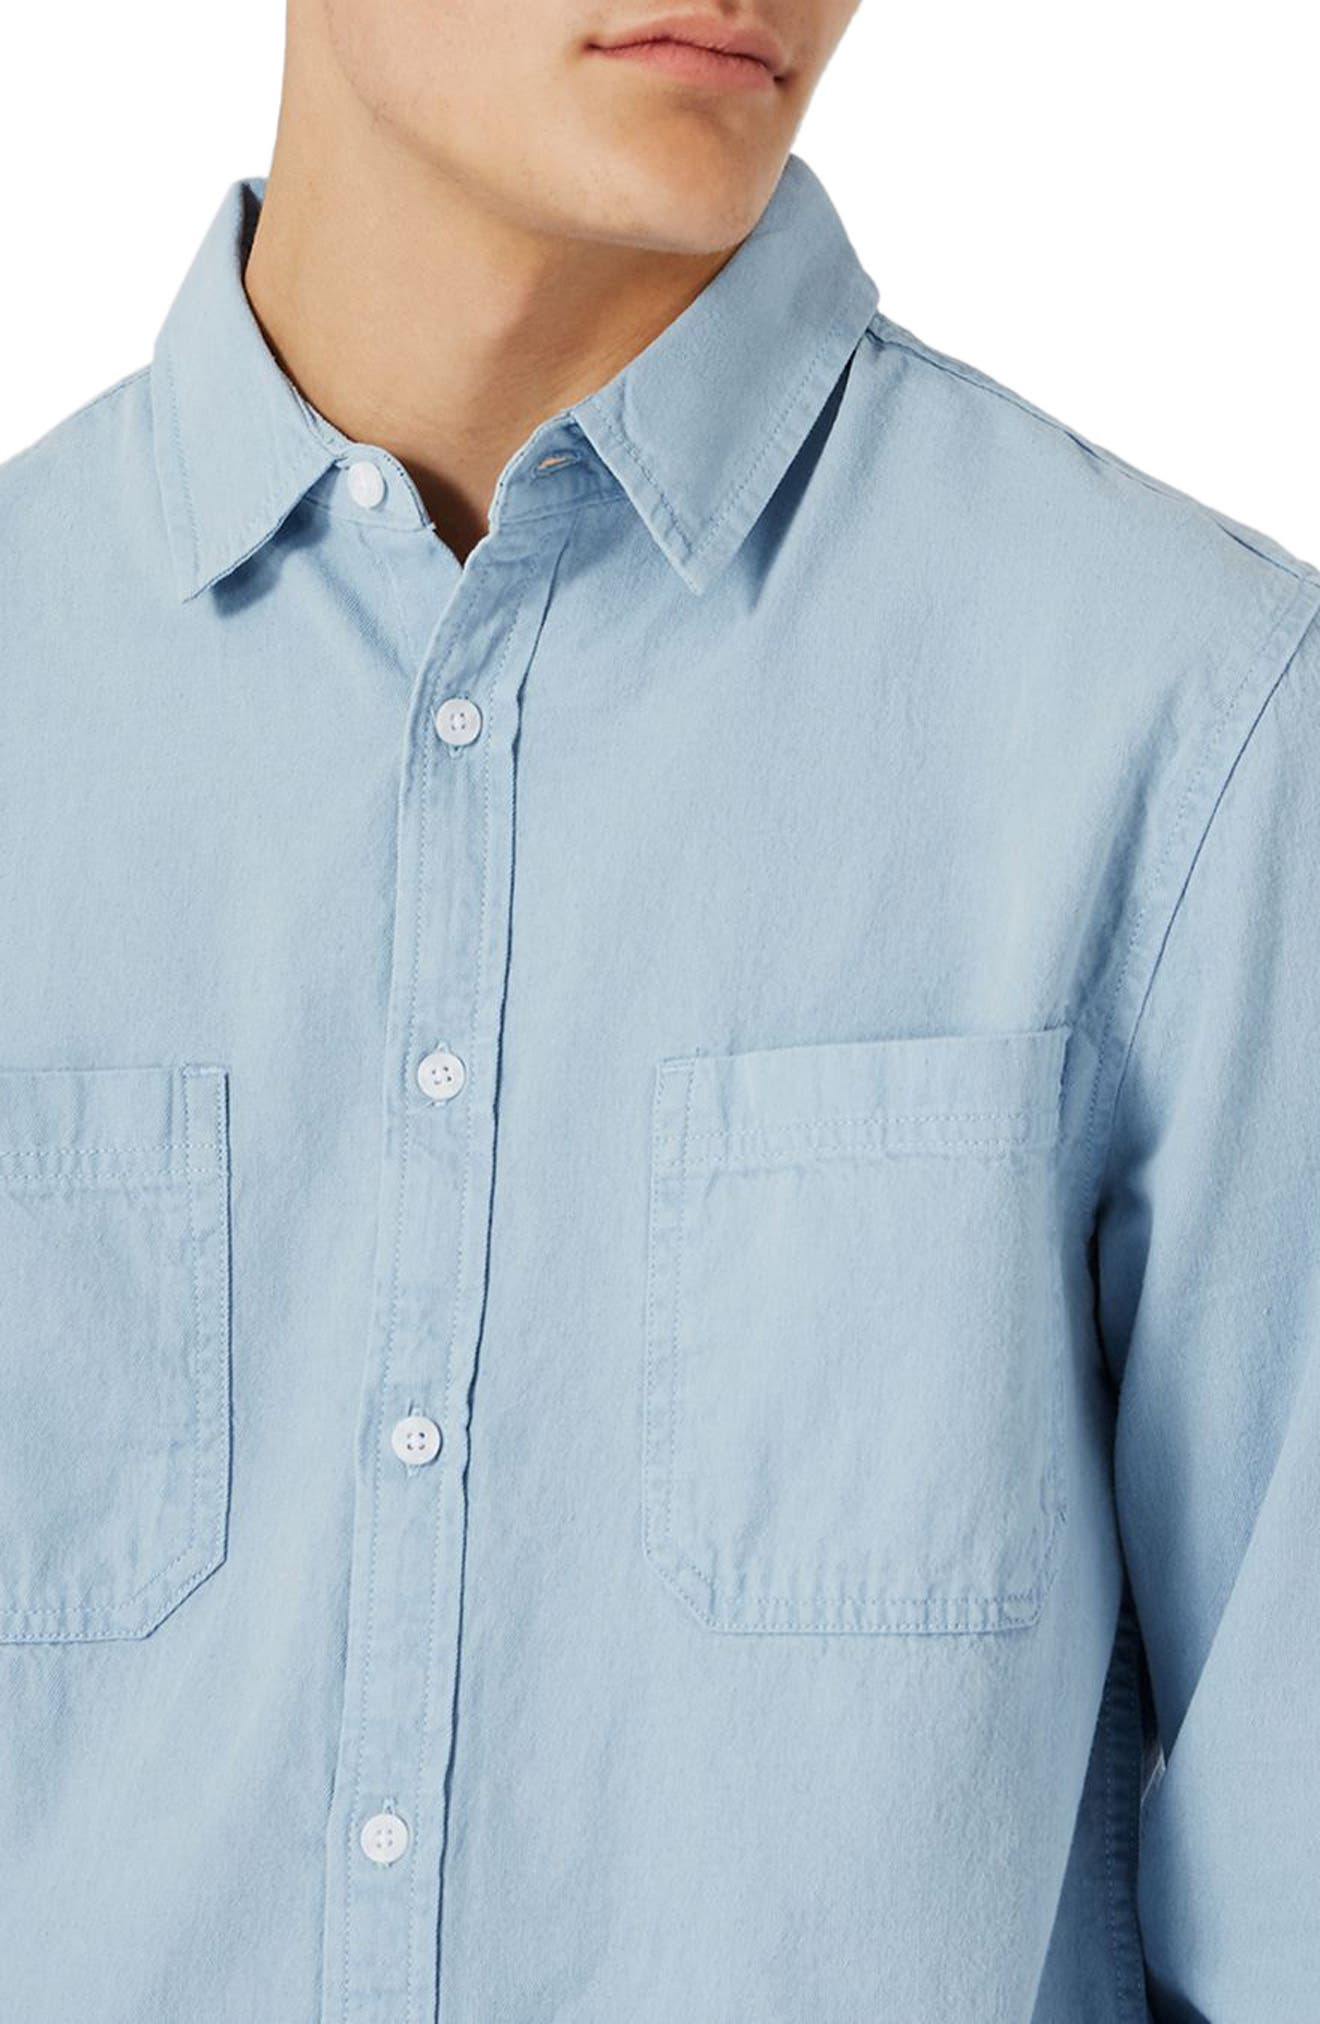 Washed Twill Shirt,                             Alternate thumbnail 2, color,                             400